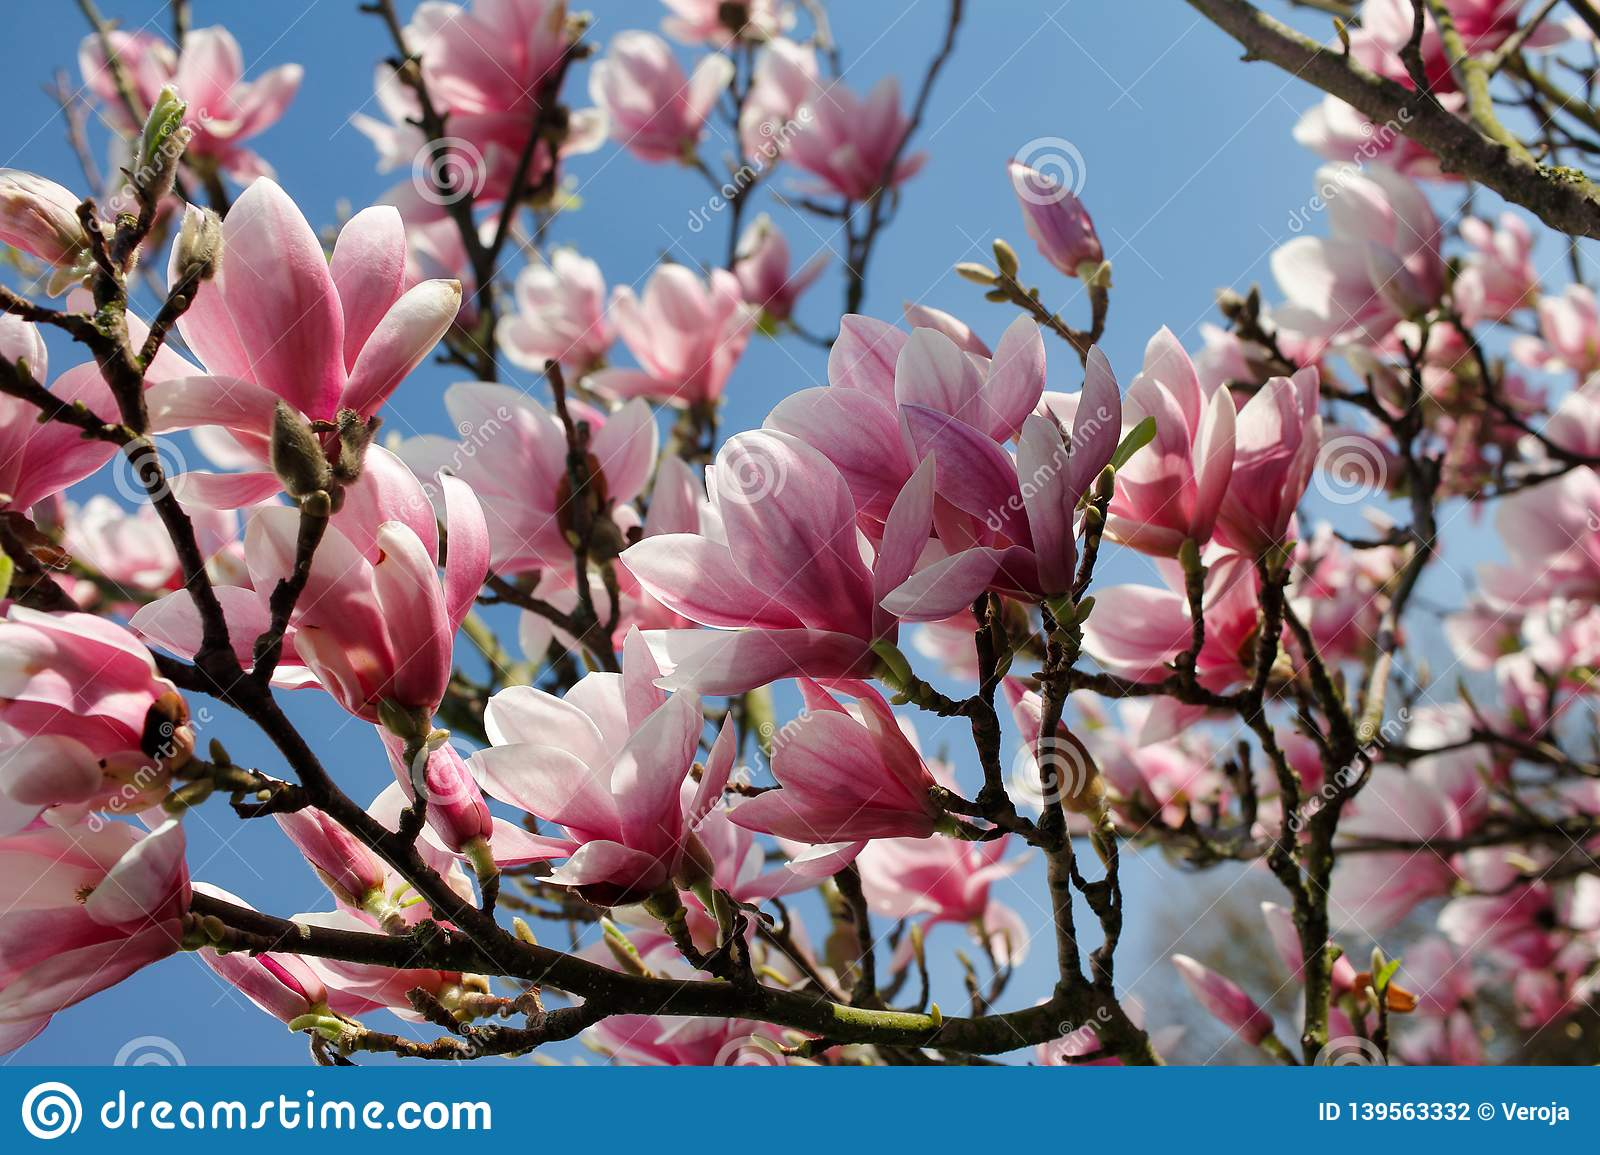 Branch Of Magnolia Tree In The Spring Garden Stock Photo Image Of